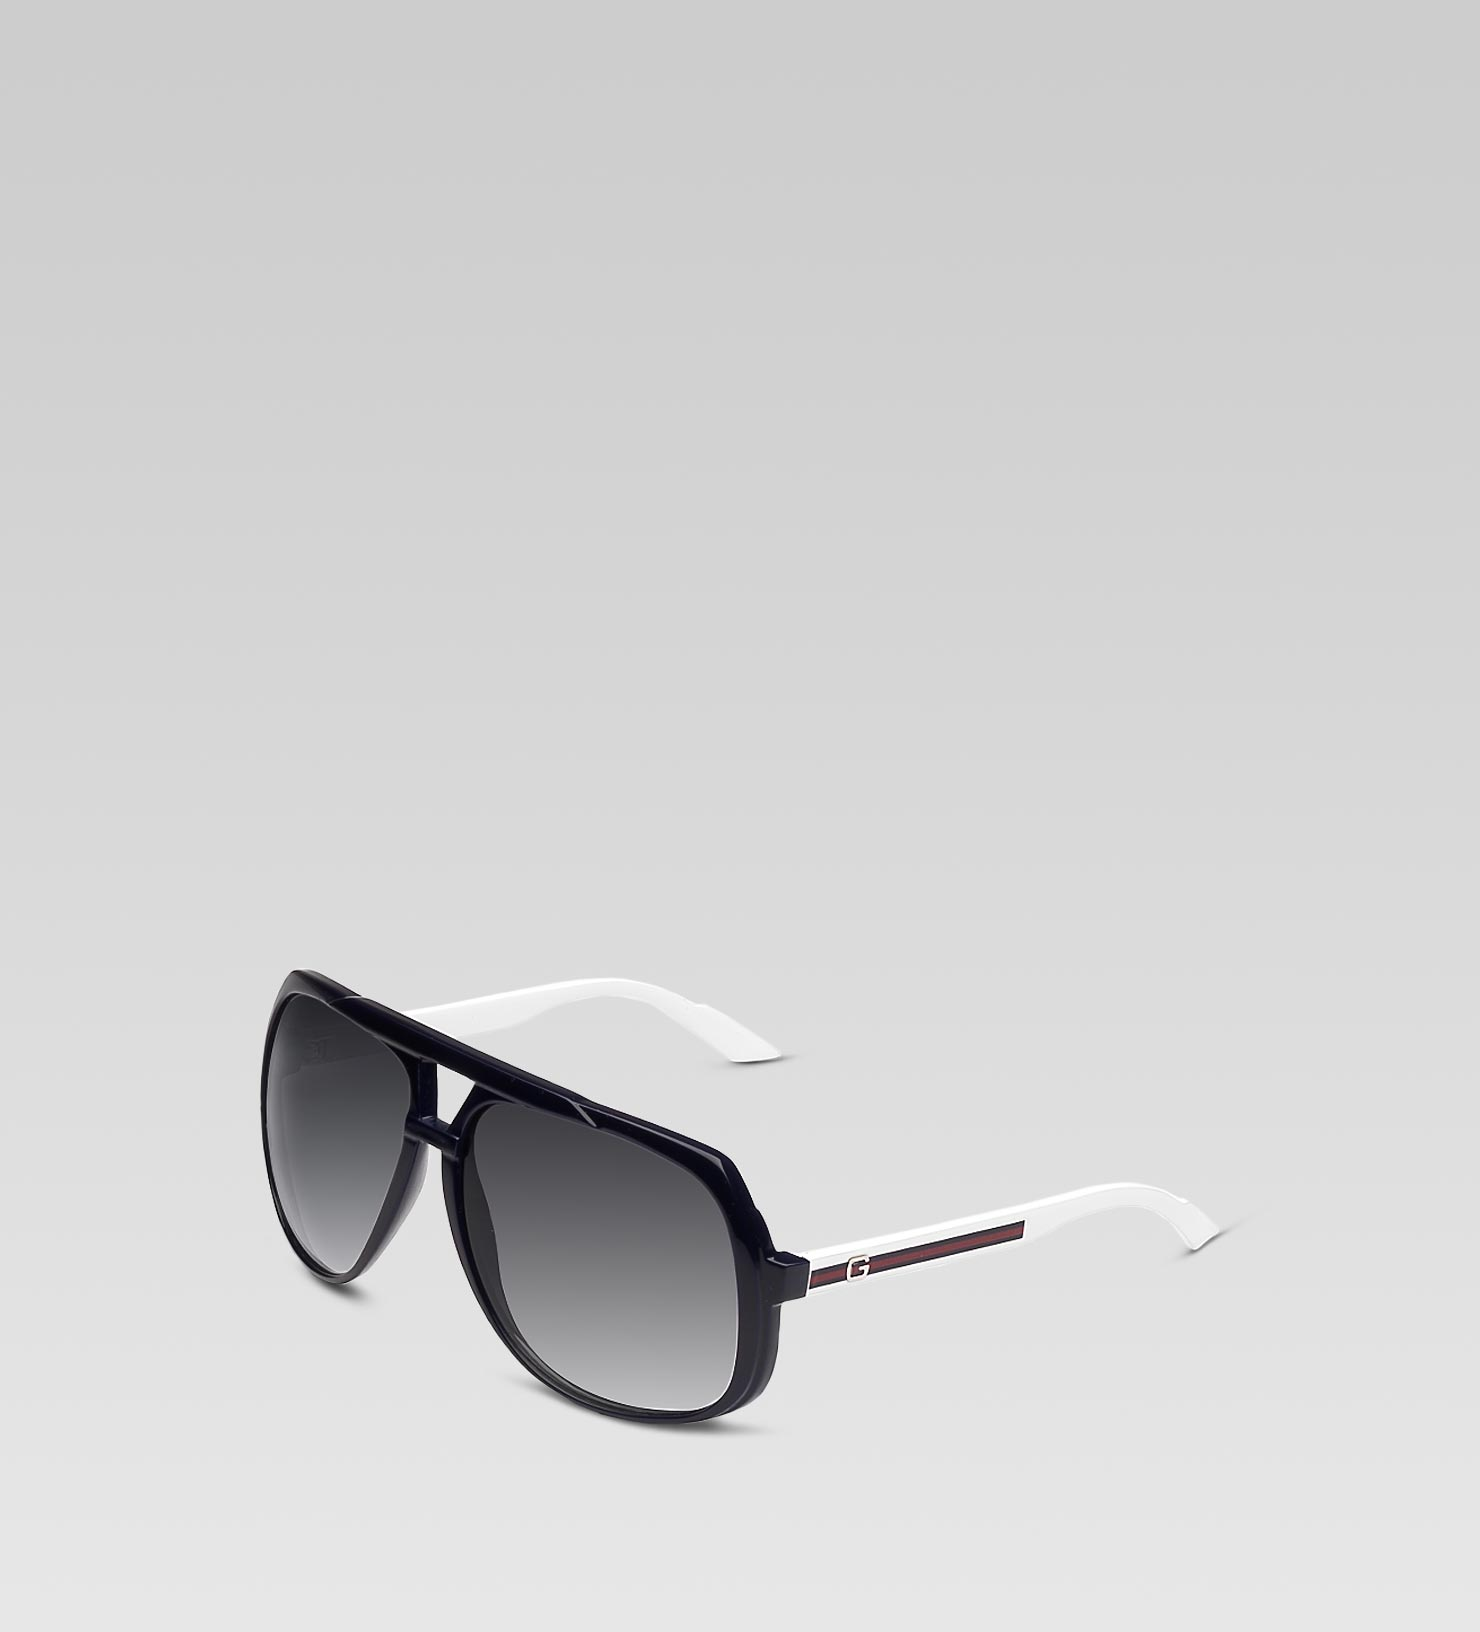 3c9a23b21c7 Lyst - Gucci Large Aviator Sunglasses in White for Men